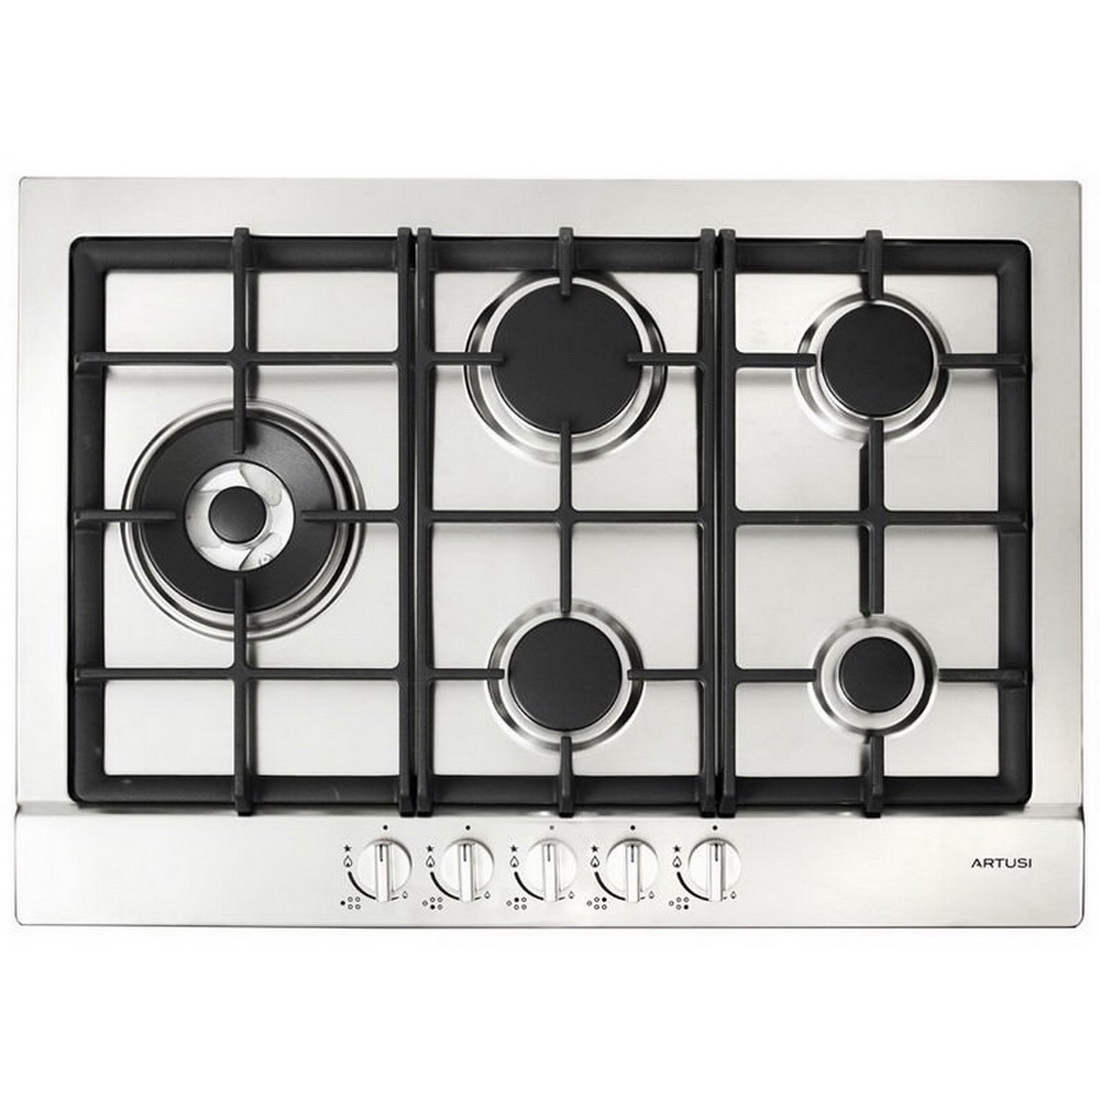 5 Burner Gas Cooktop 70cm with Side WOK Flame Failure Stainless Steel AGH70XFFD